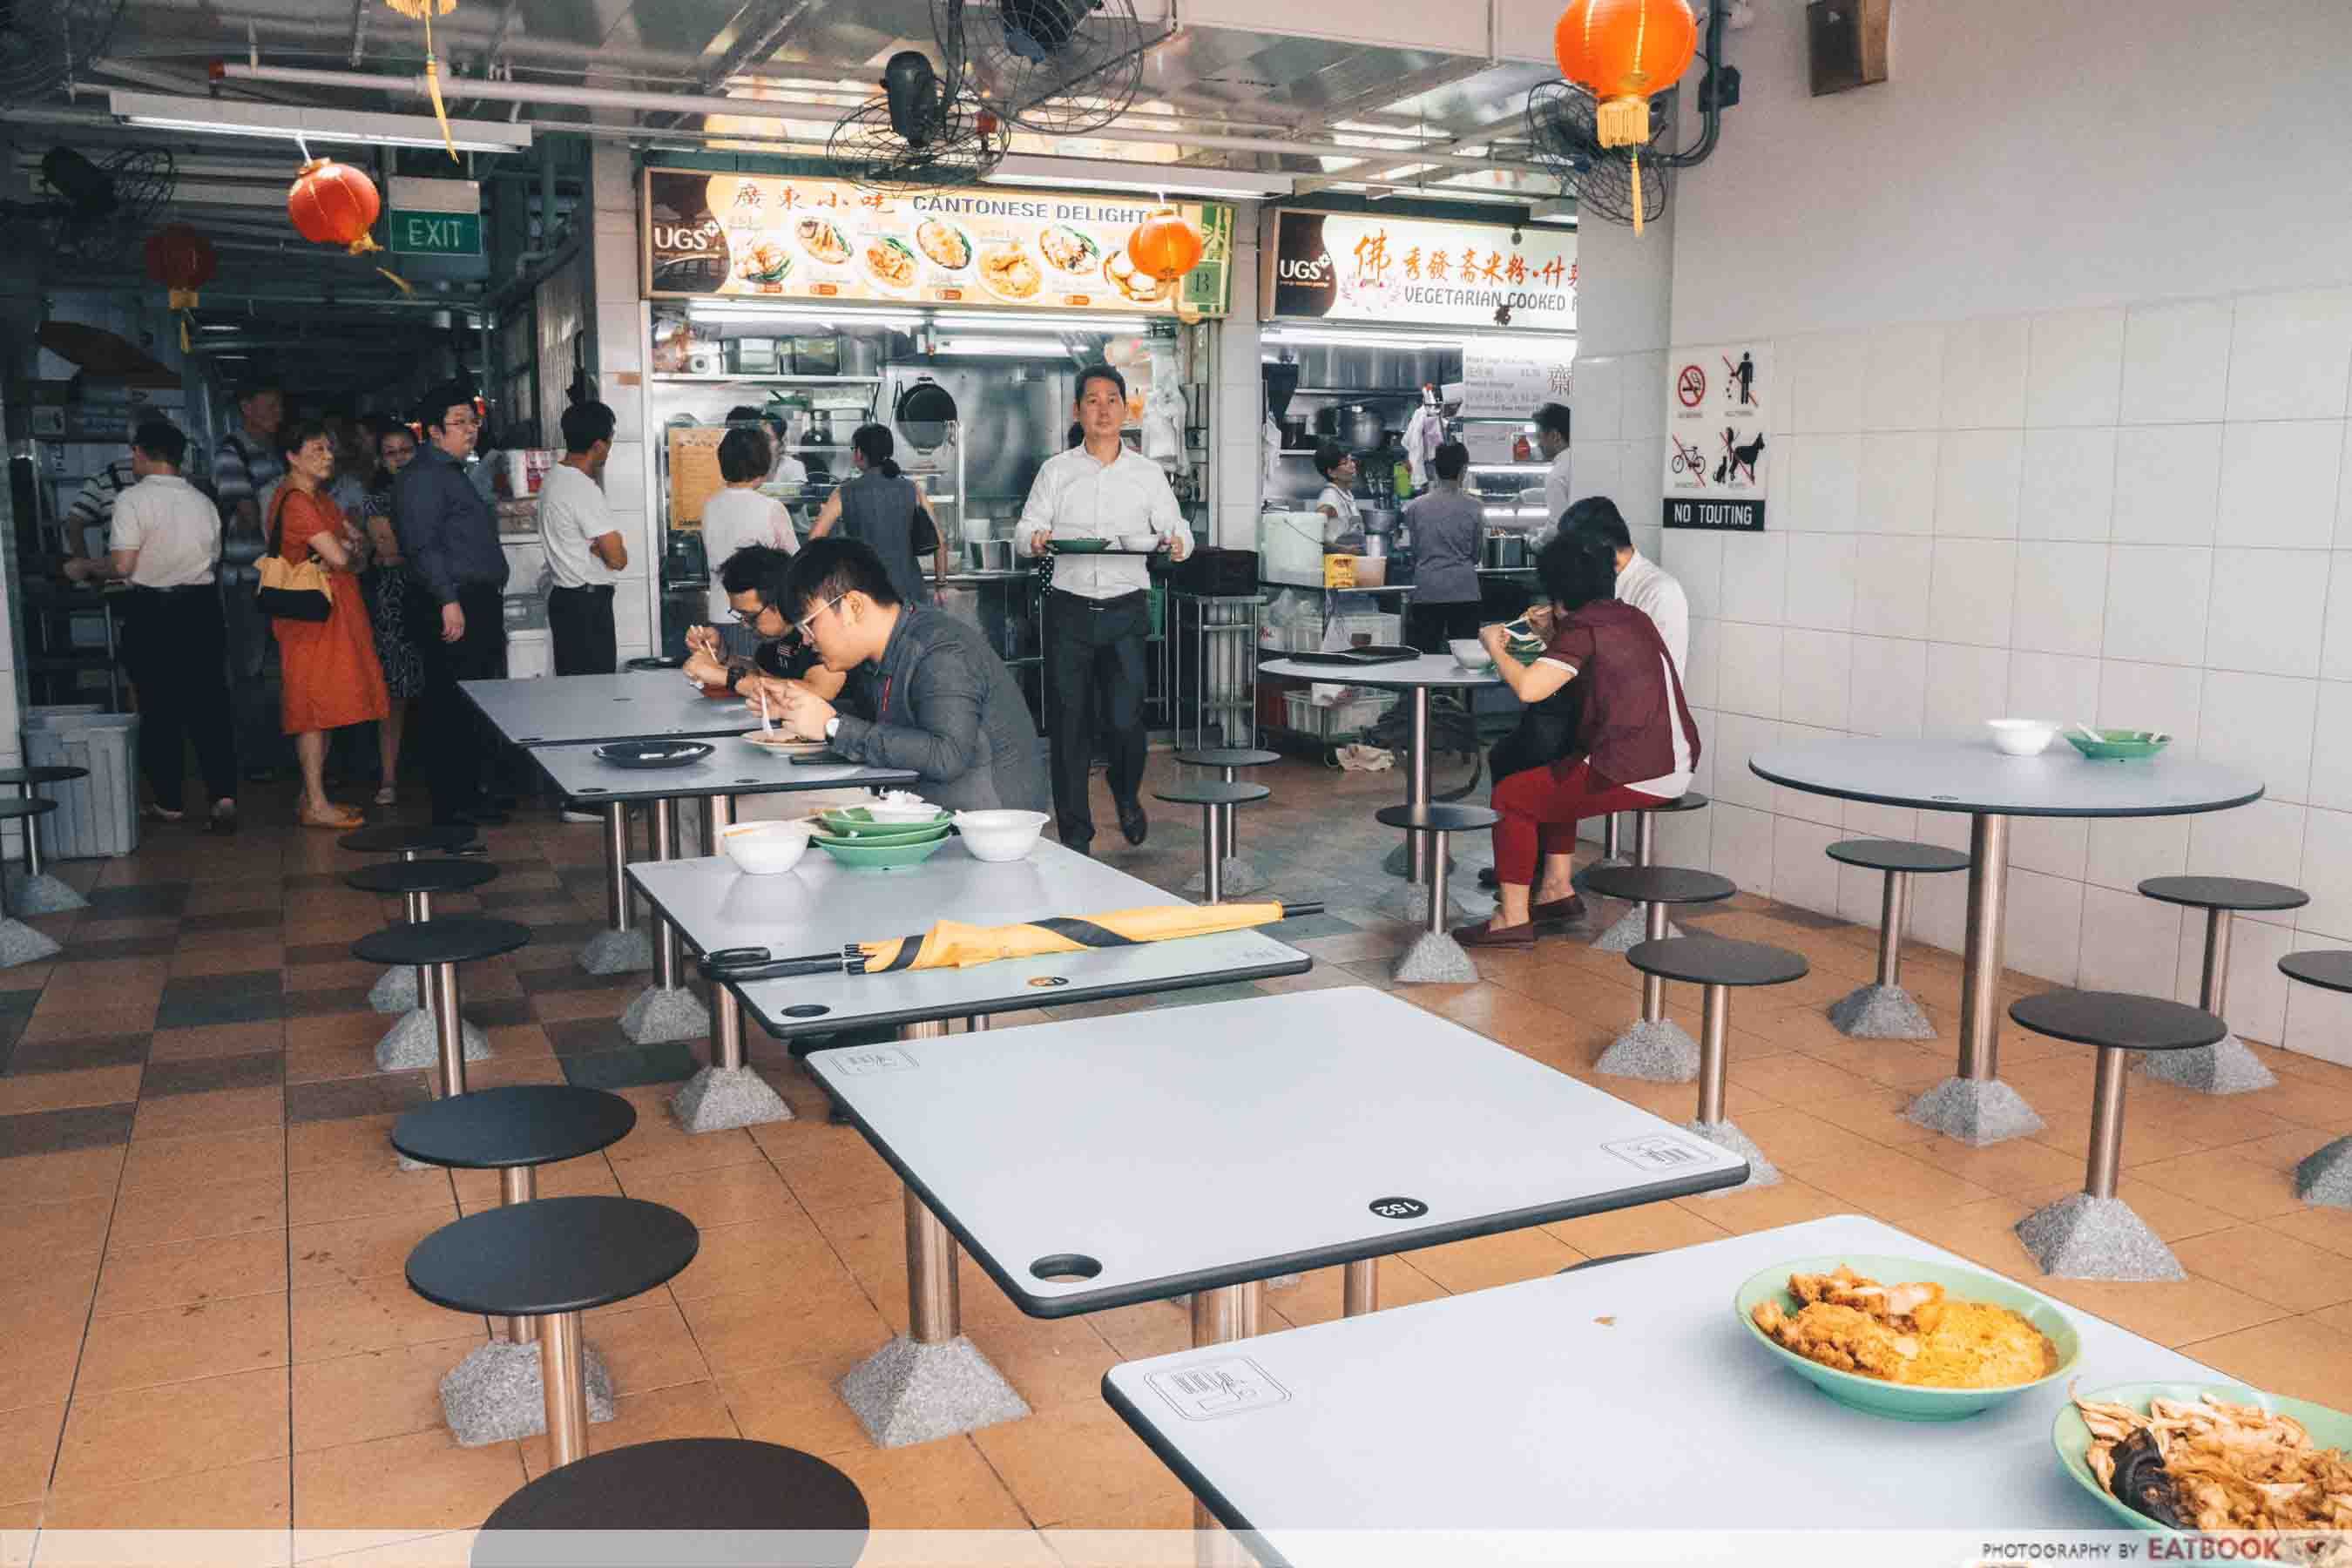 Cantonese Delights - Updated Ambience